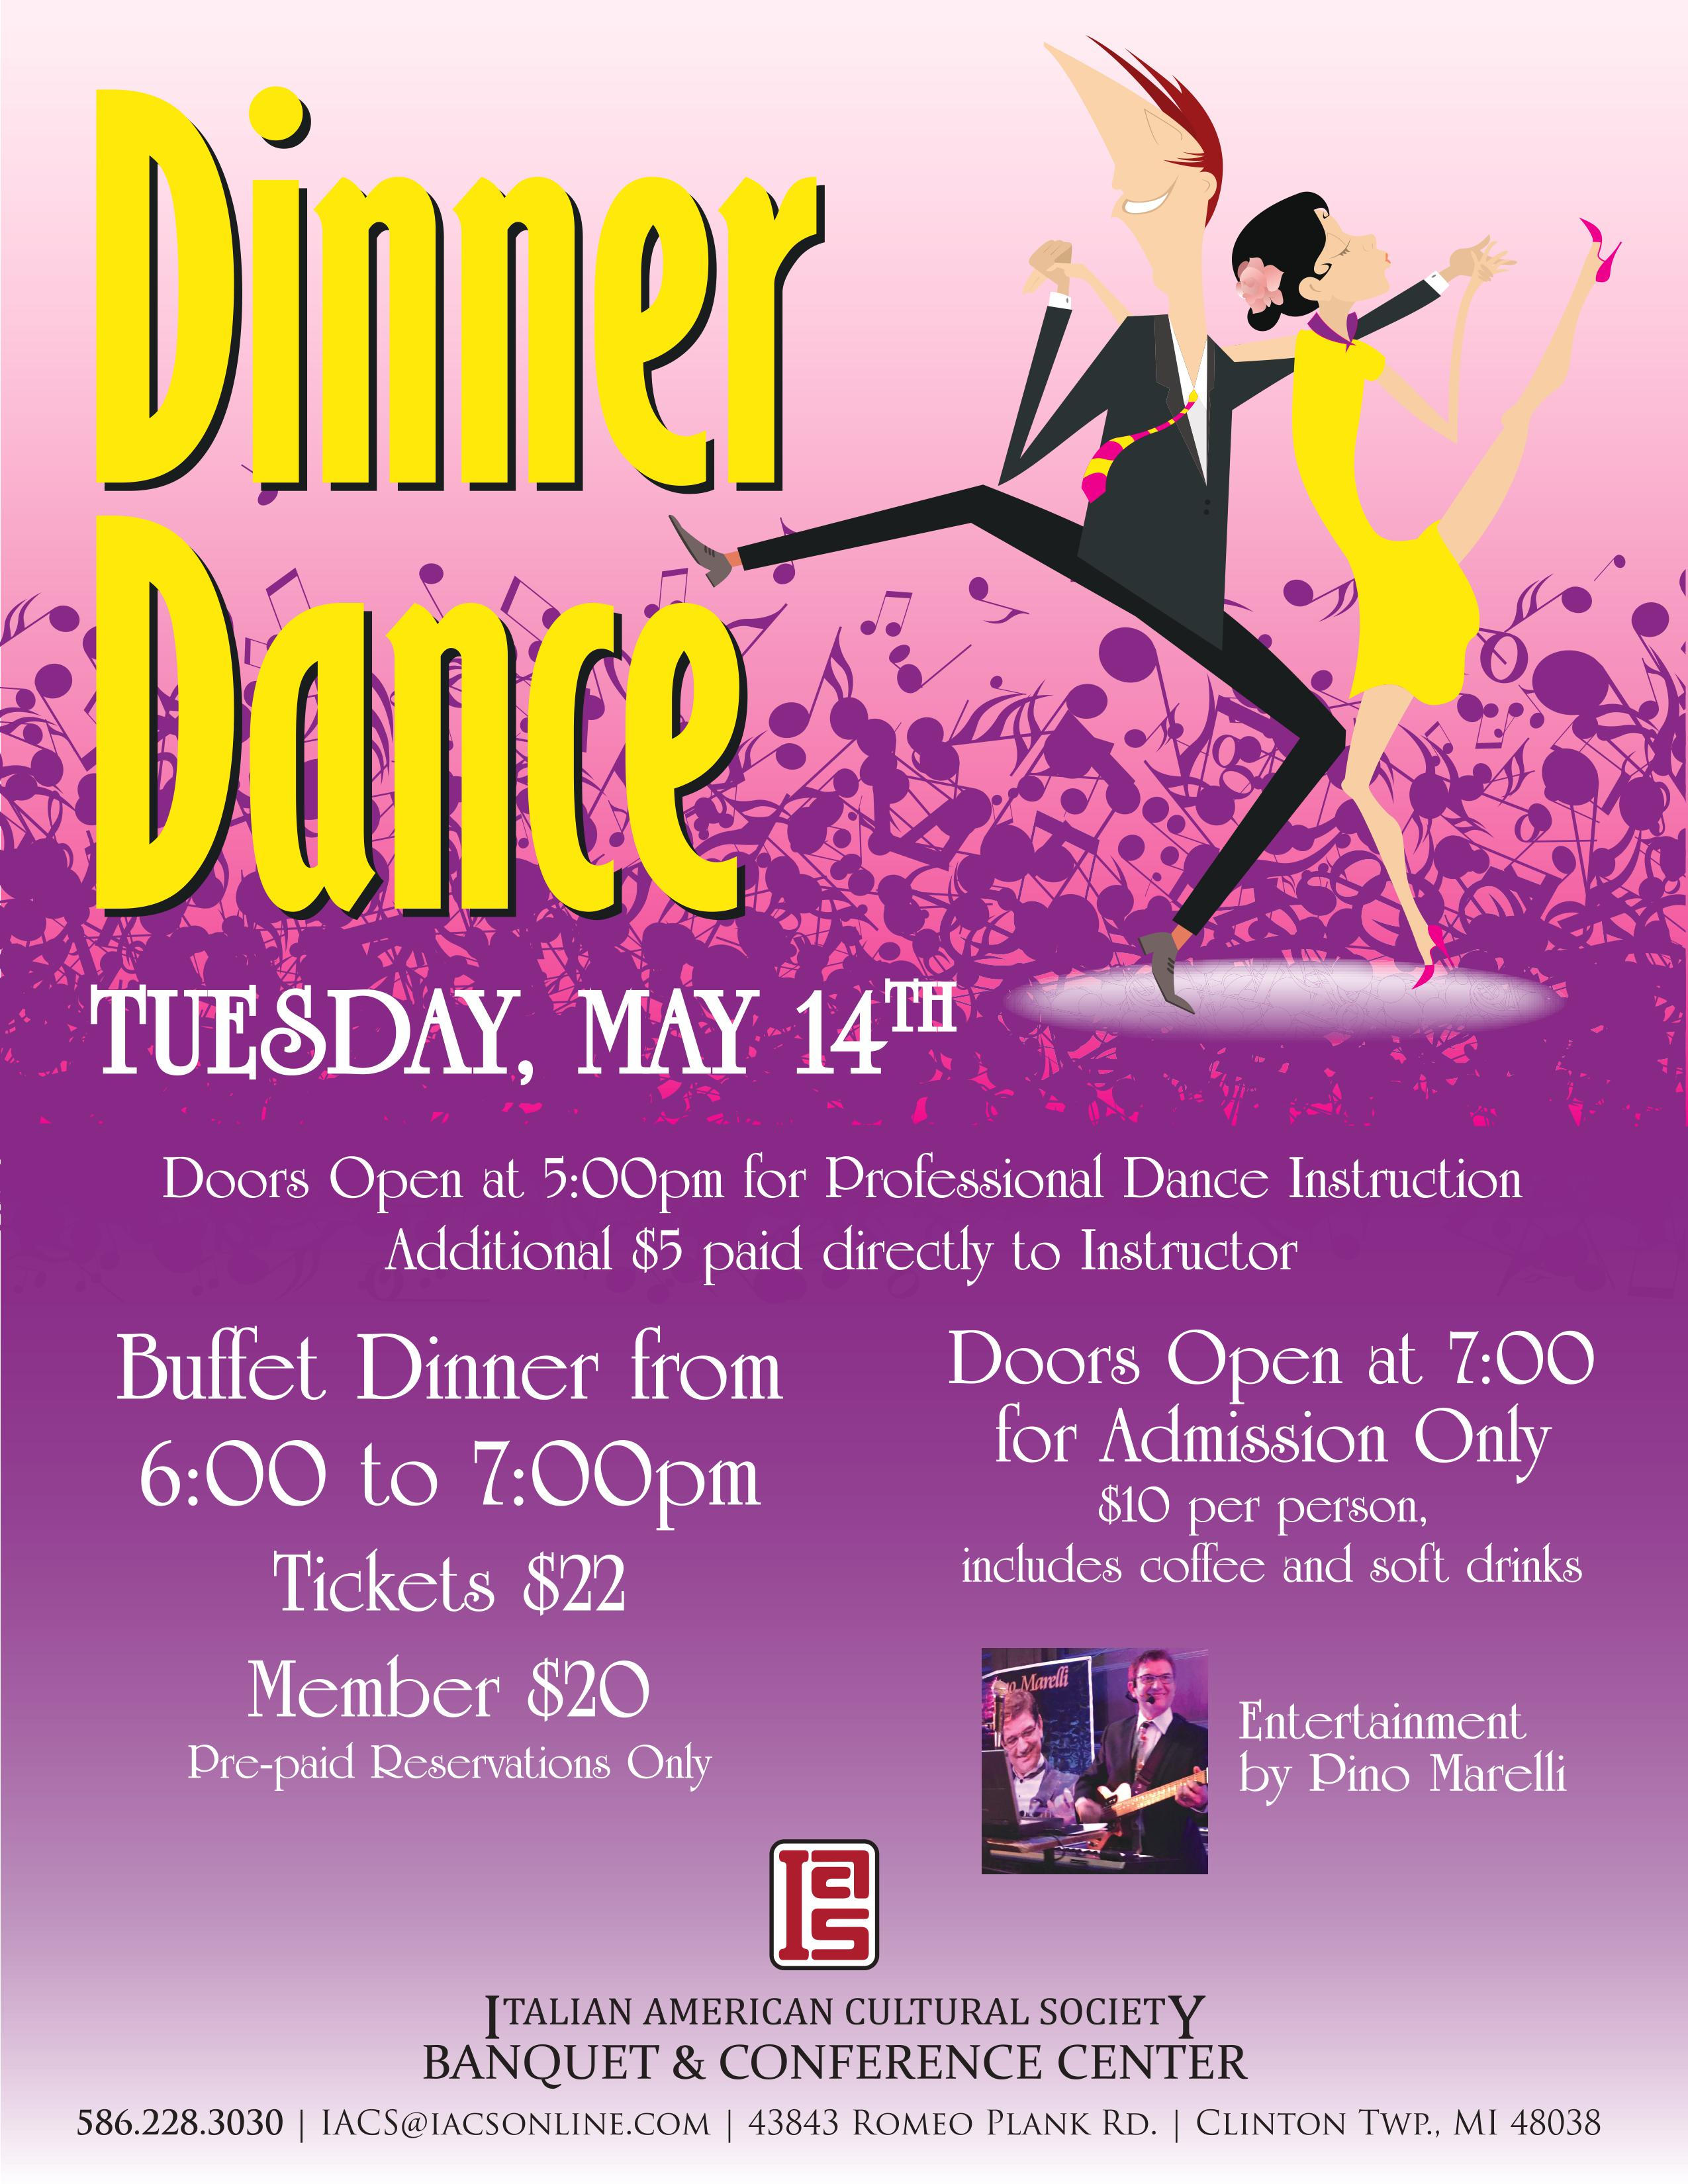 Dinner Dance. Tuesday, May 14th. Doors open at 5:00pm for Professional Dance Instruction. Additional $5 paid directly to instructor. Buffet dinner from 6 to 7pm. Tickets $22. Member $20. Pre-paid Reservations only. Doors open at 7 fro admission only. $10 per person. includes coffee and soft drinks. Entertainment by Pino Marelli.